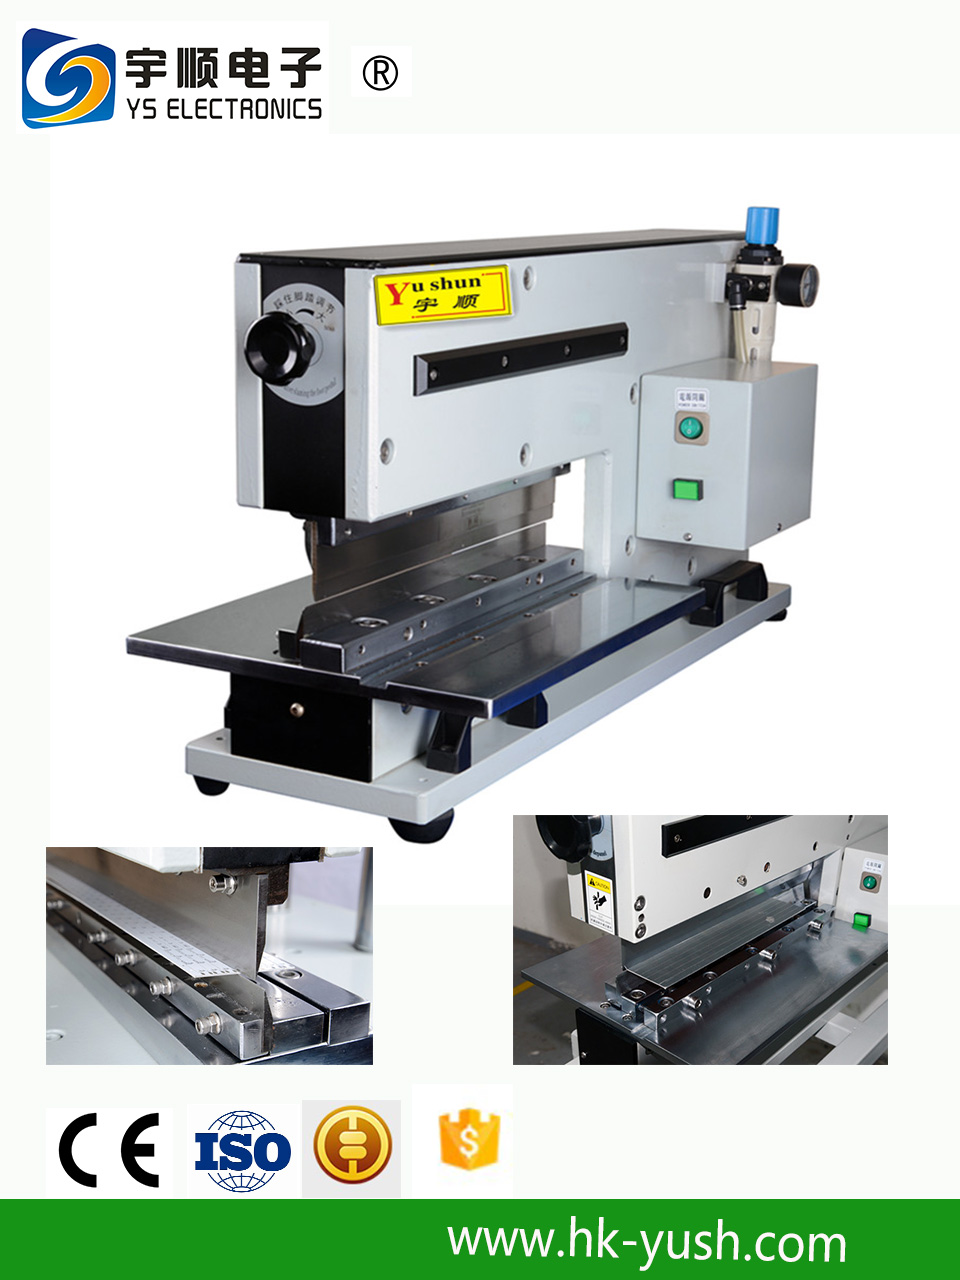 pcb cutting machine manufacturers -YSVC-2